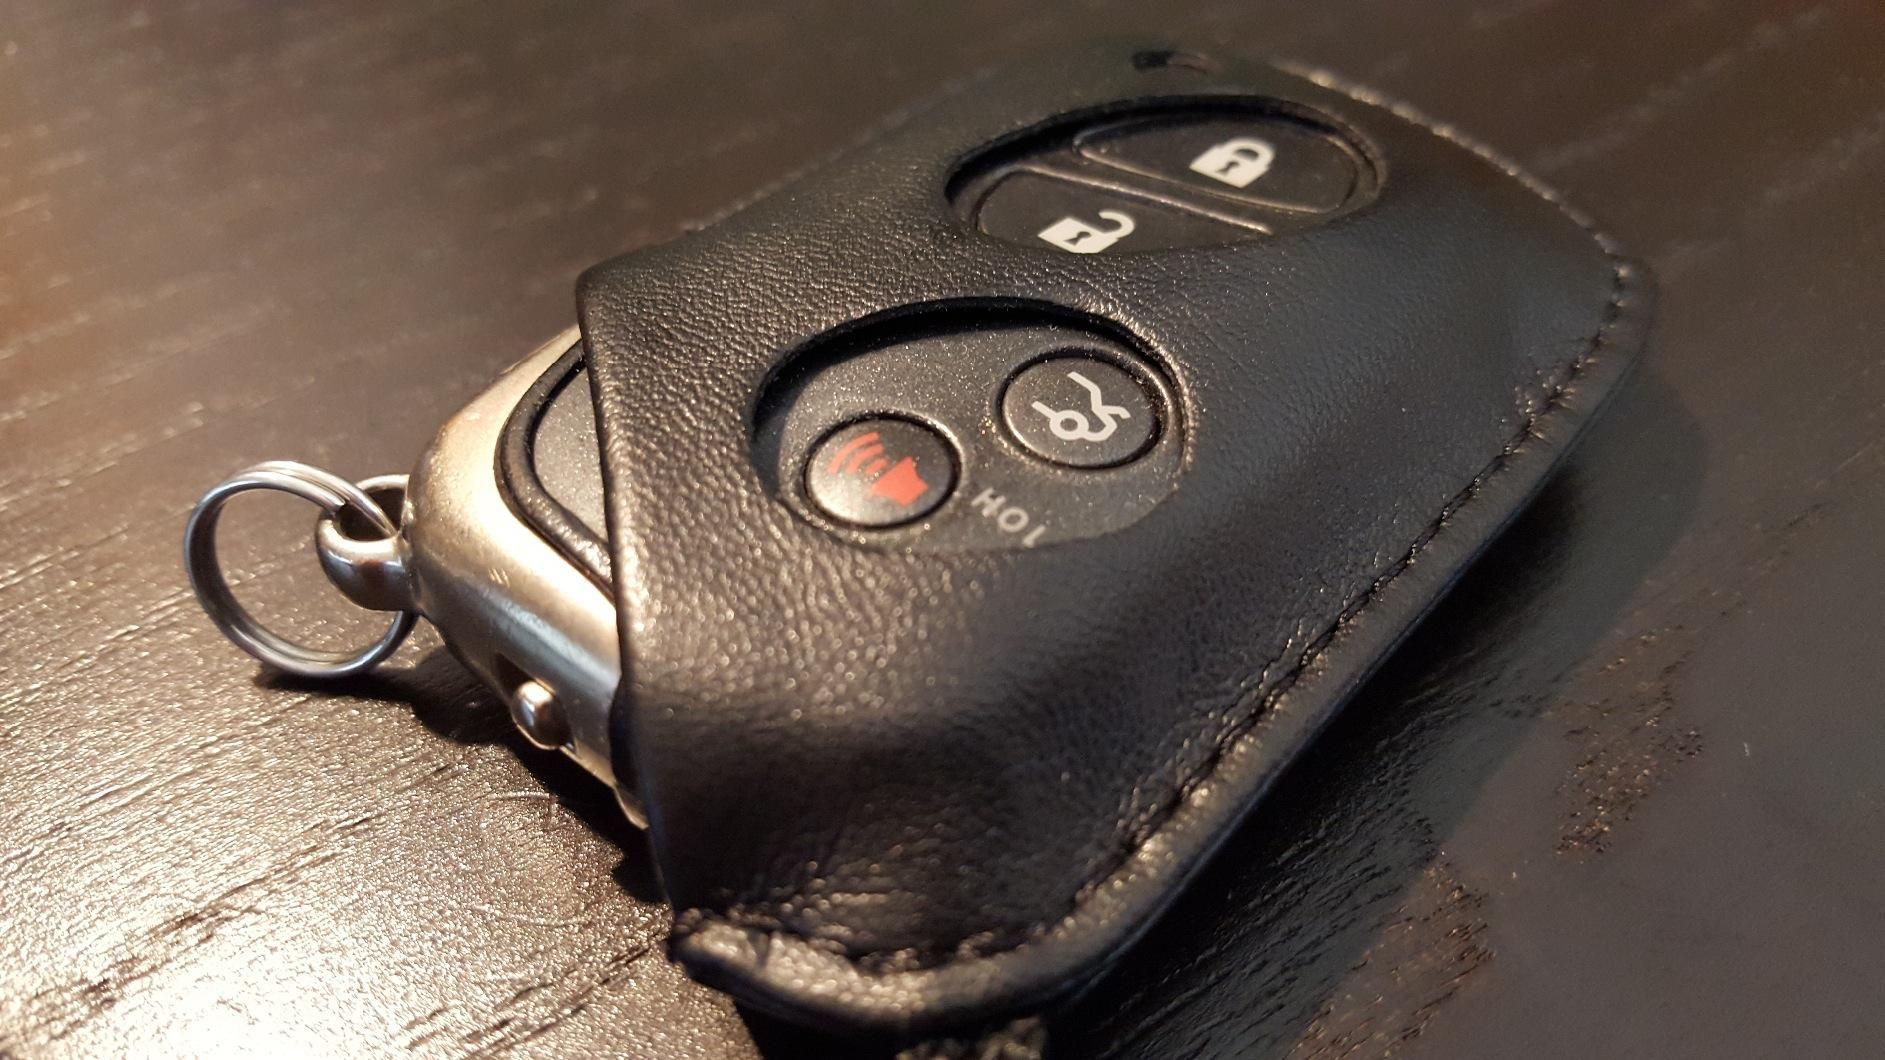 Superb Make Your Lexus Car Key Remote Look Classy With Our Leather Cover! Whether  You Are Replacing Your Old, Peeling Cover Or Buying One For The First Time,  ...